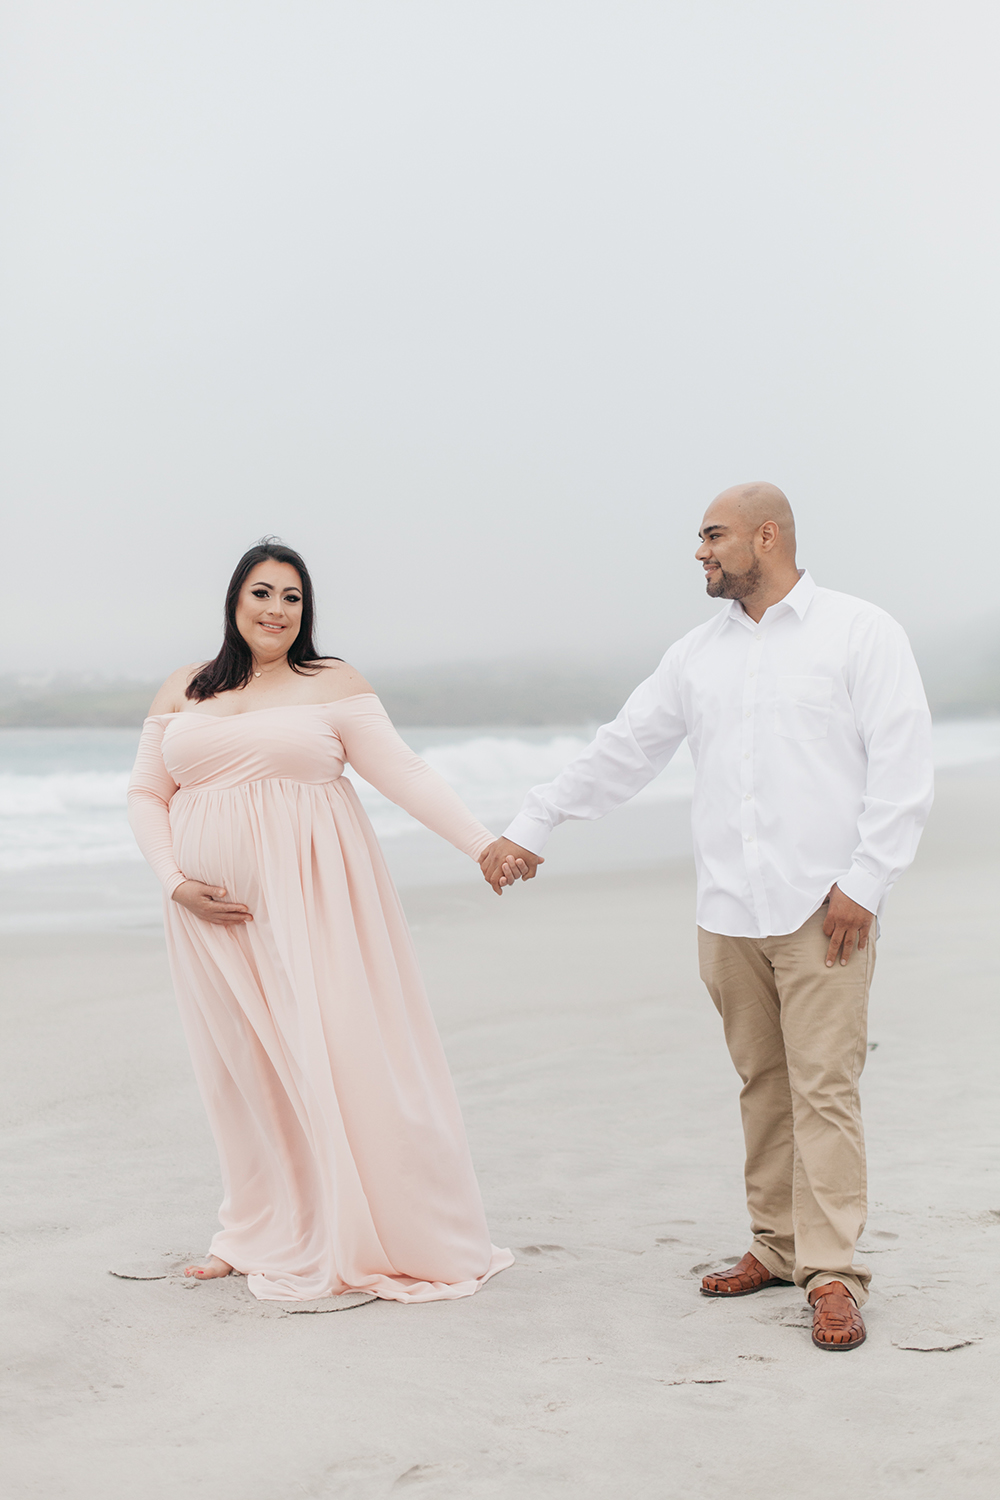 Husband and wife holding hands during their maternity photo session in Carmel-by-the-sea.